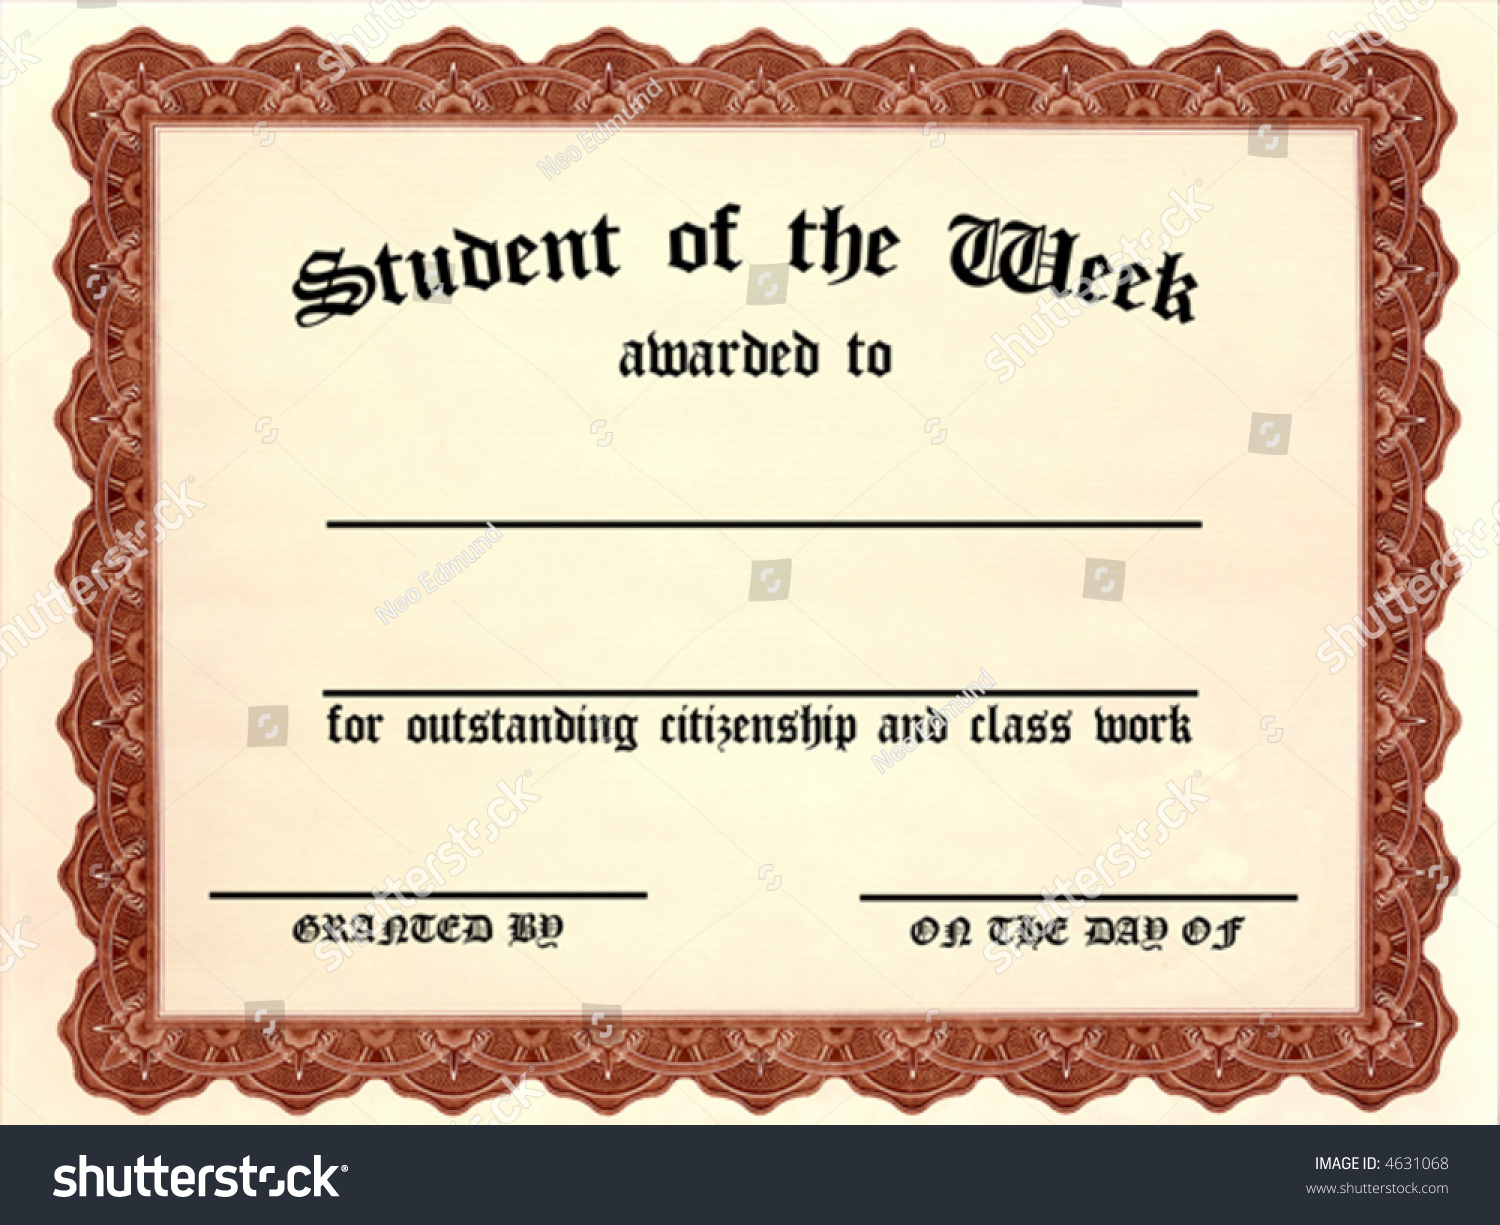 Customizable Student Week Certificate Stock Vector Royalty Free